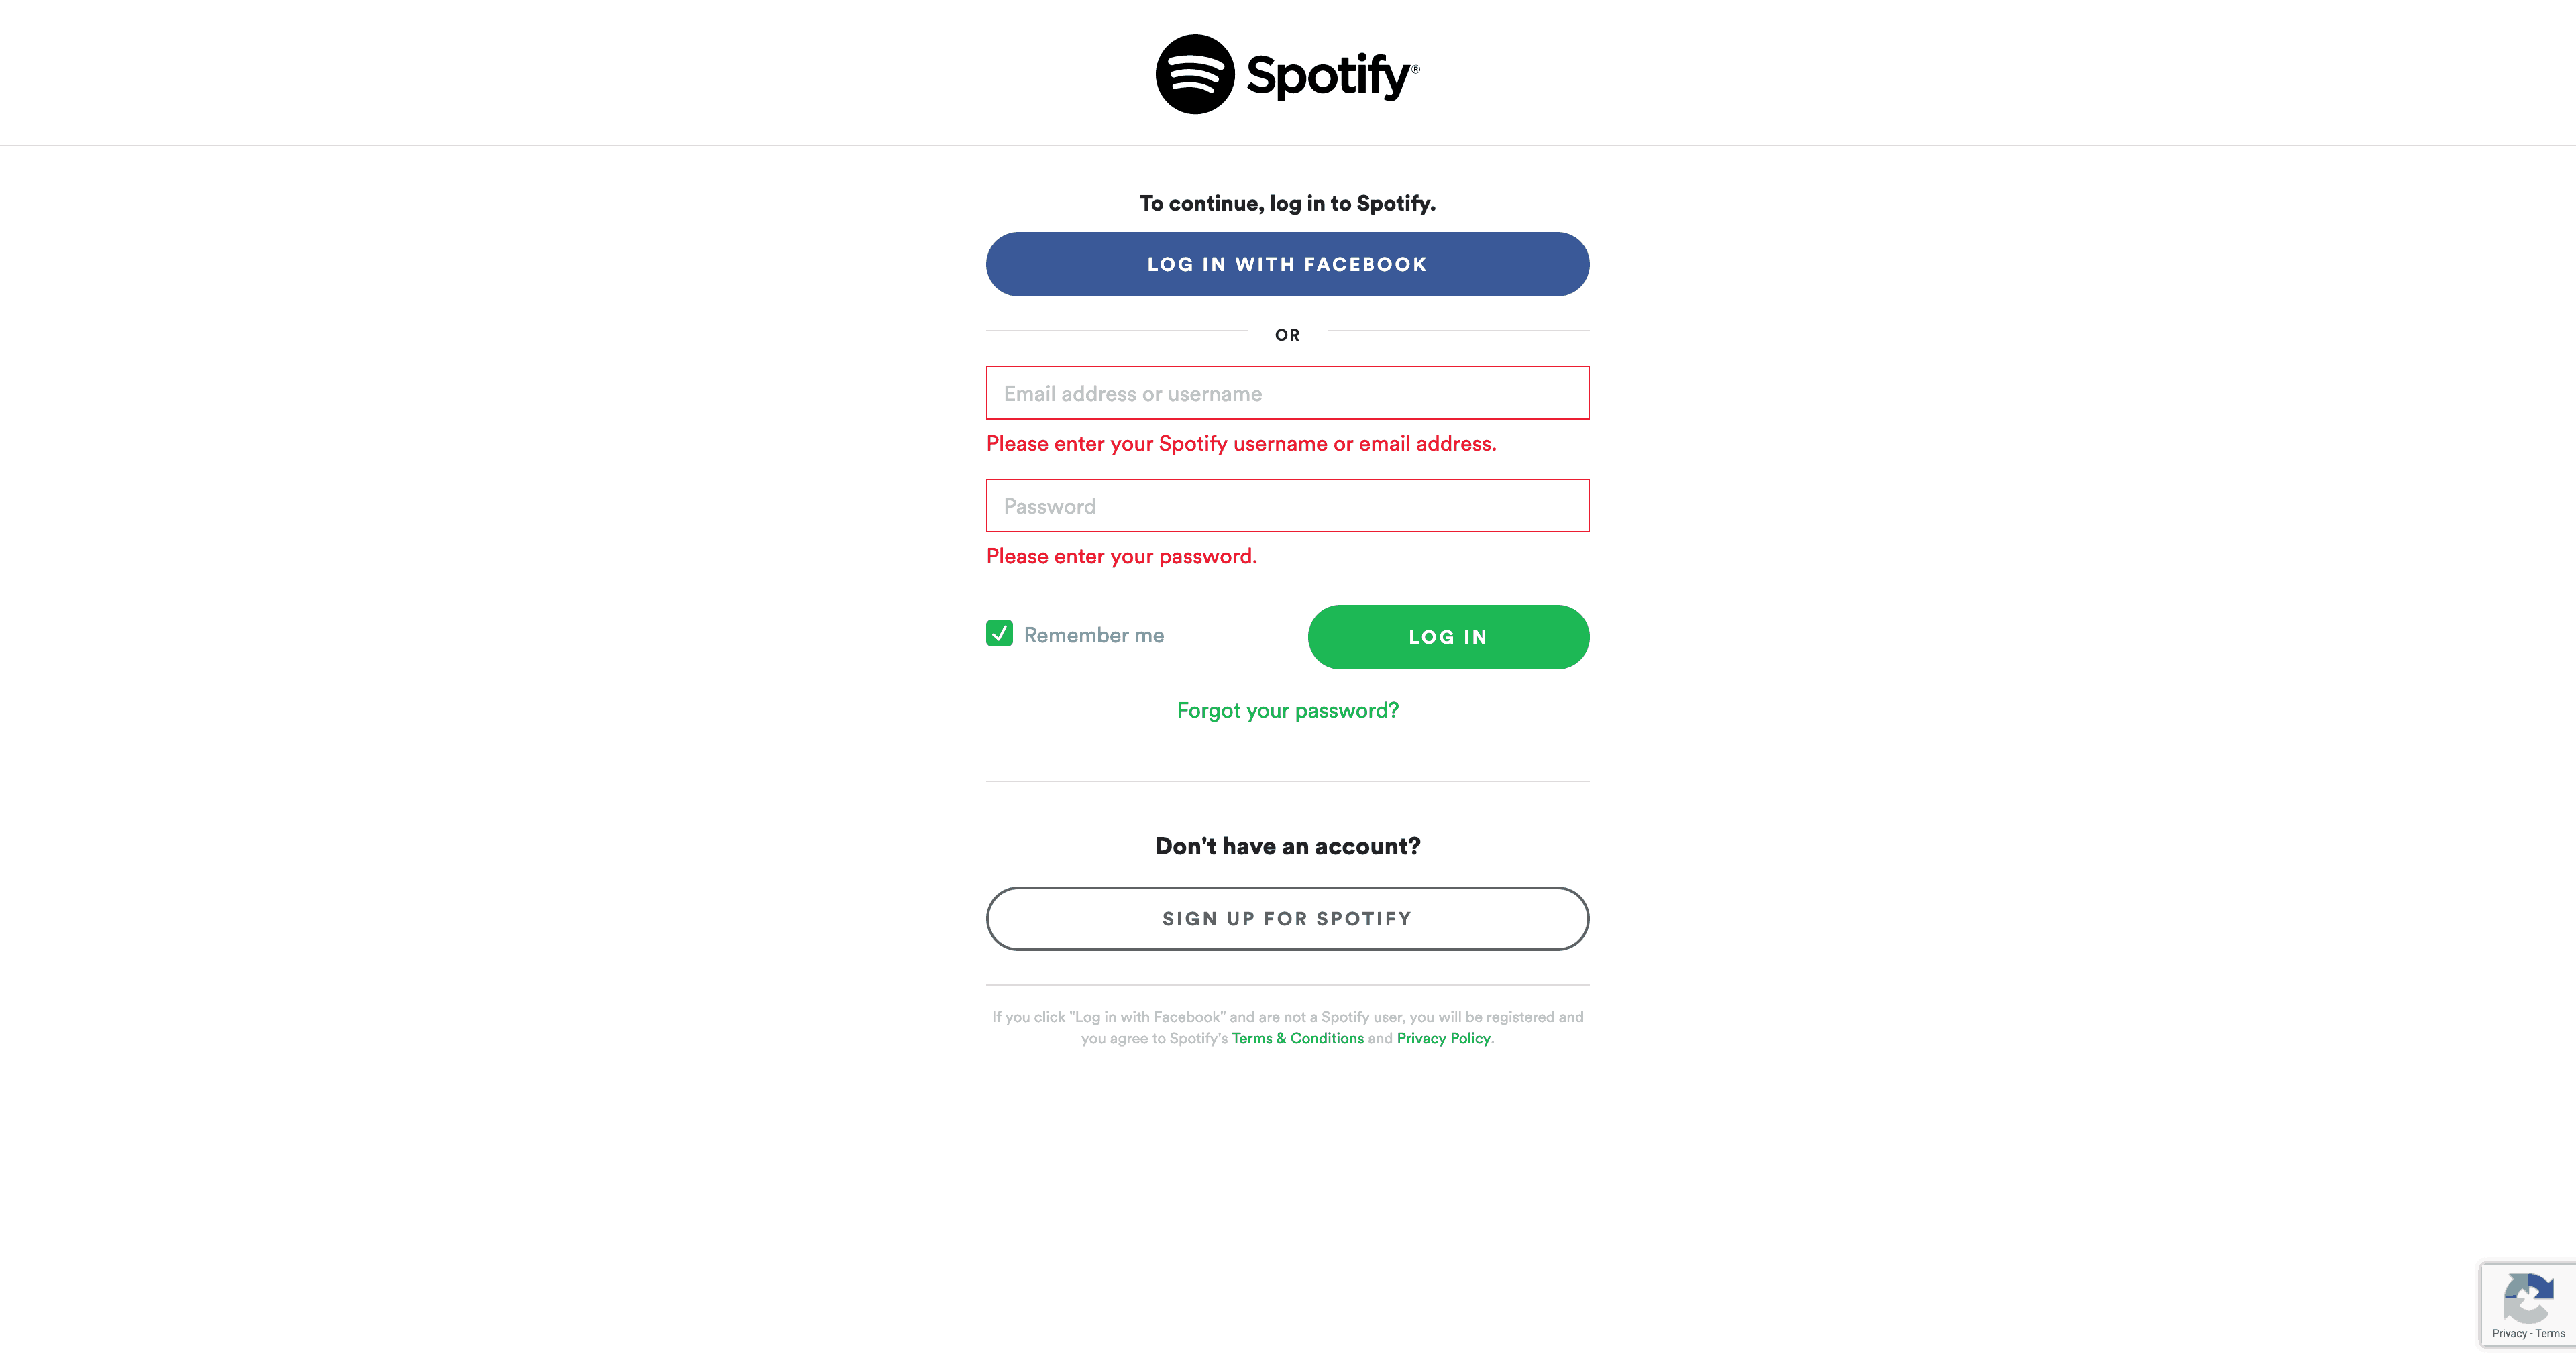 Login by Spotify